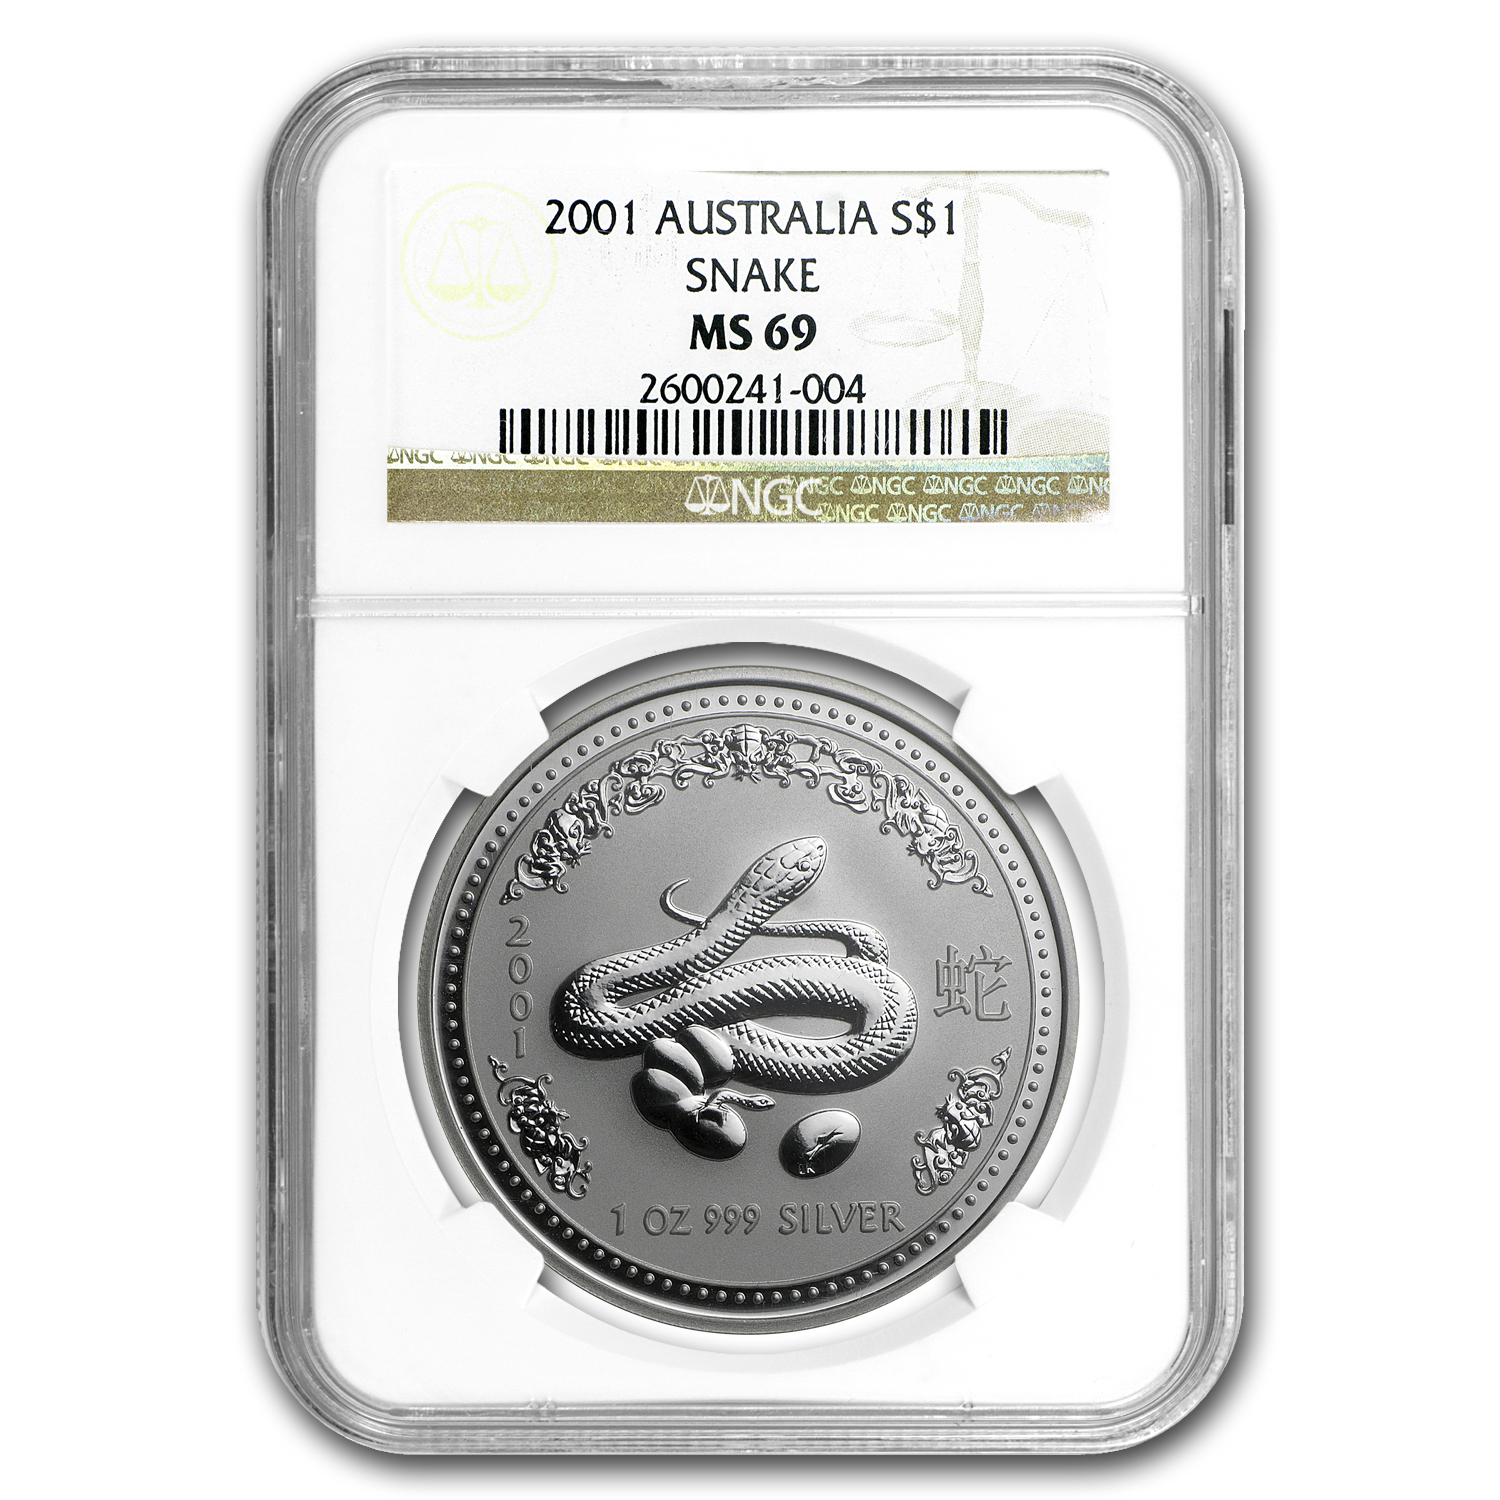 2001 Australia 1 oz Silver Year of the Snake MS-69 NGC